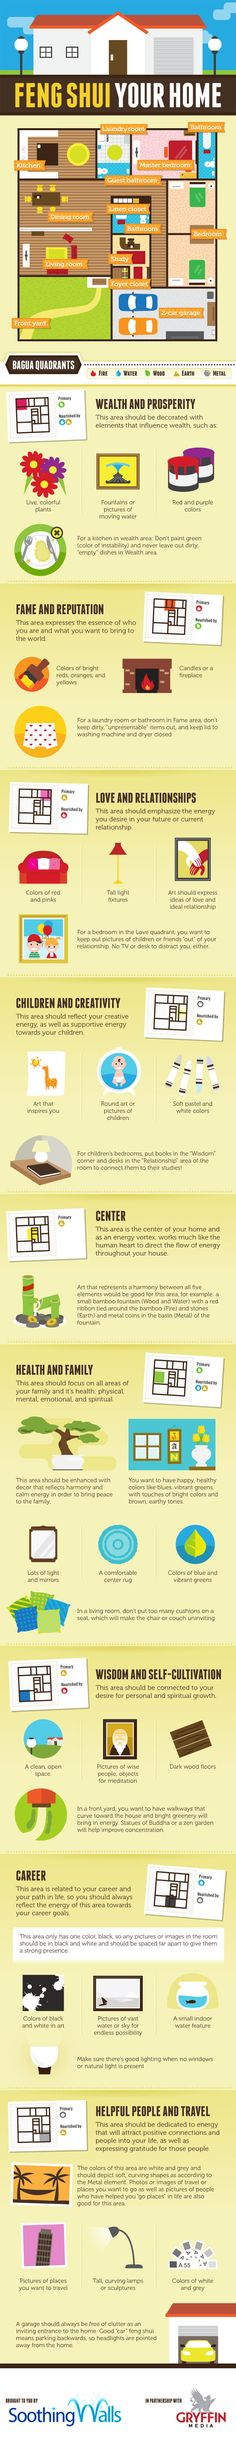 Um resumo das melhores aplicações para Feng Shui, infographic, green lifestyle, sustainable design, green interiors, green design, eco interiors, green decor, interior design, Soothing Walls, Gryffin Media